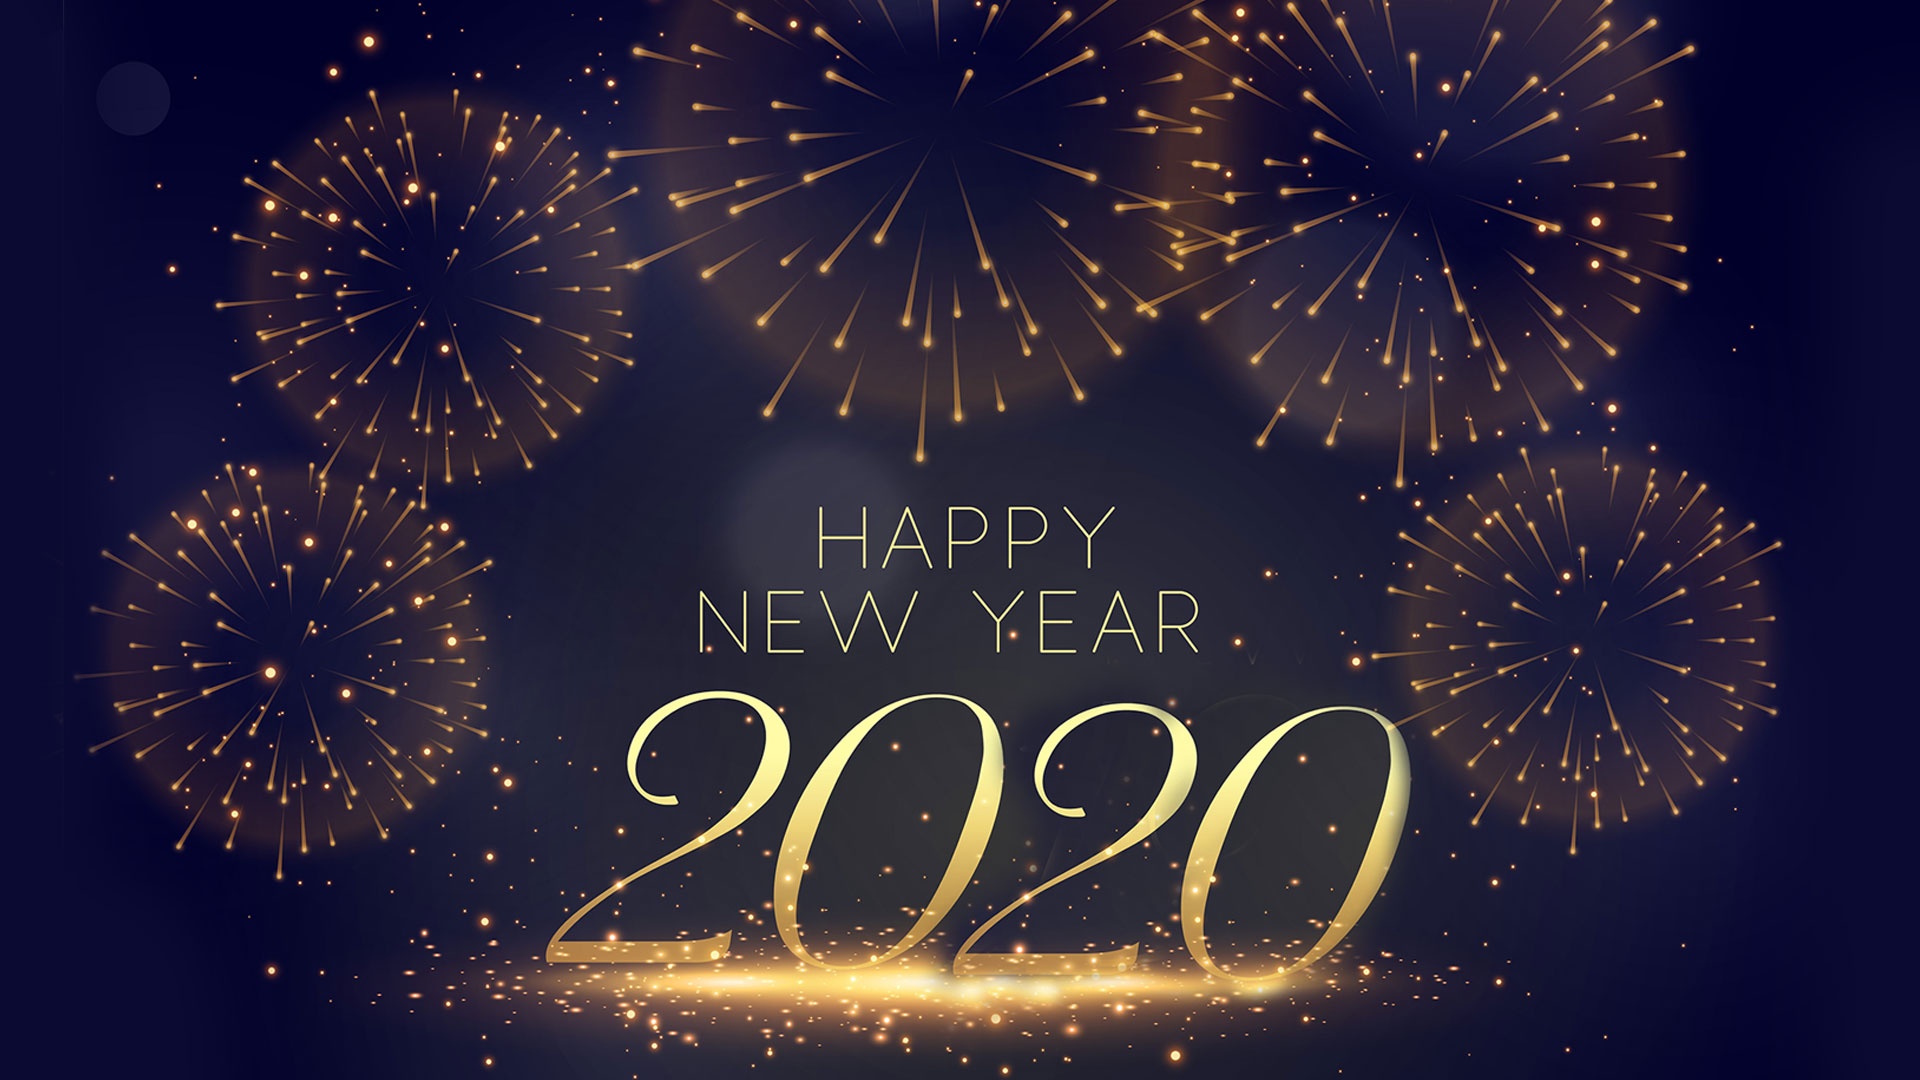 2020 Happy New Year HD Wallpapers Images Download   Techicy 1920x1080